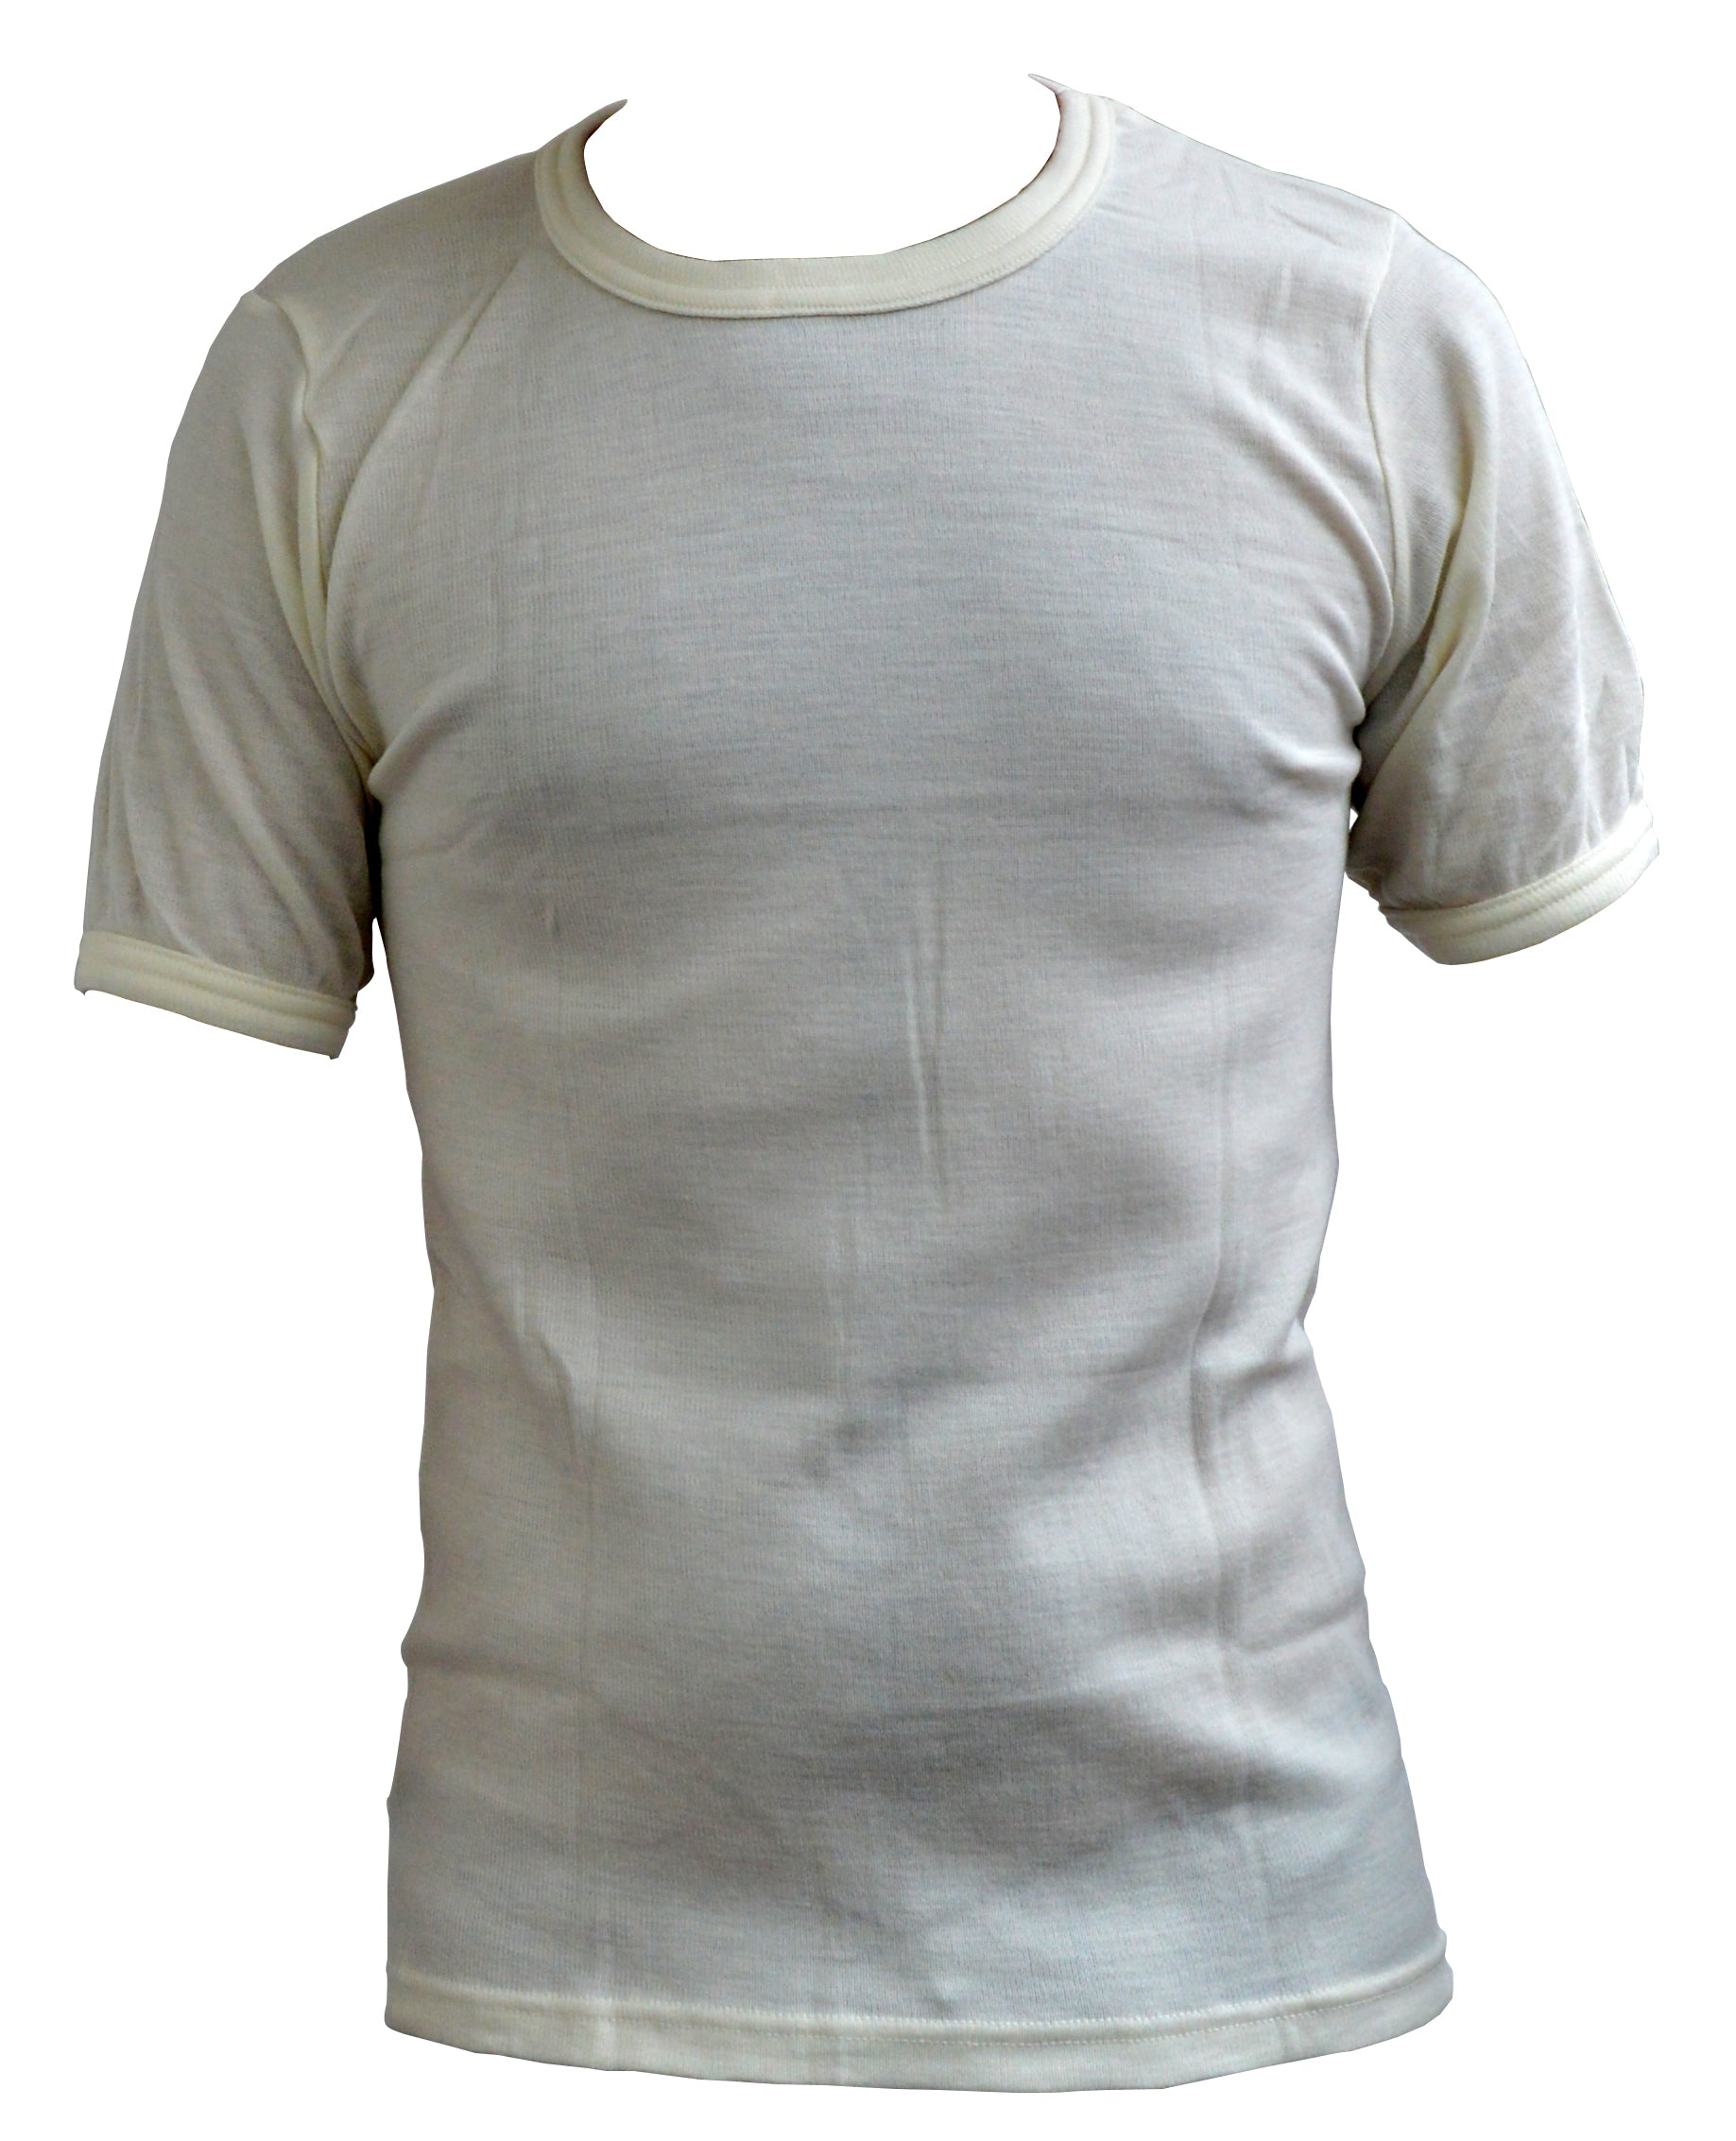 Mens wool thermal underwear t-shirt